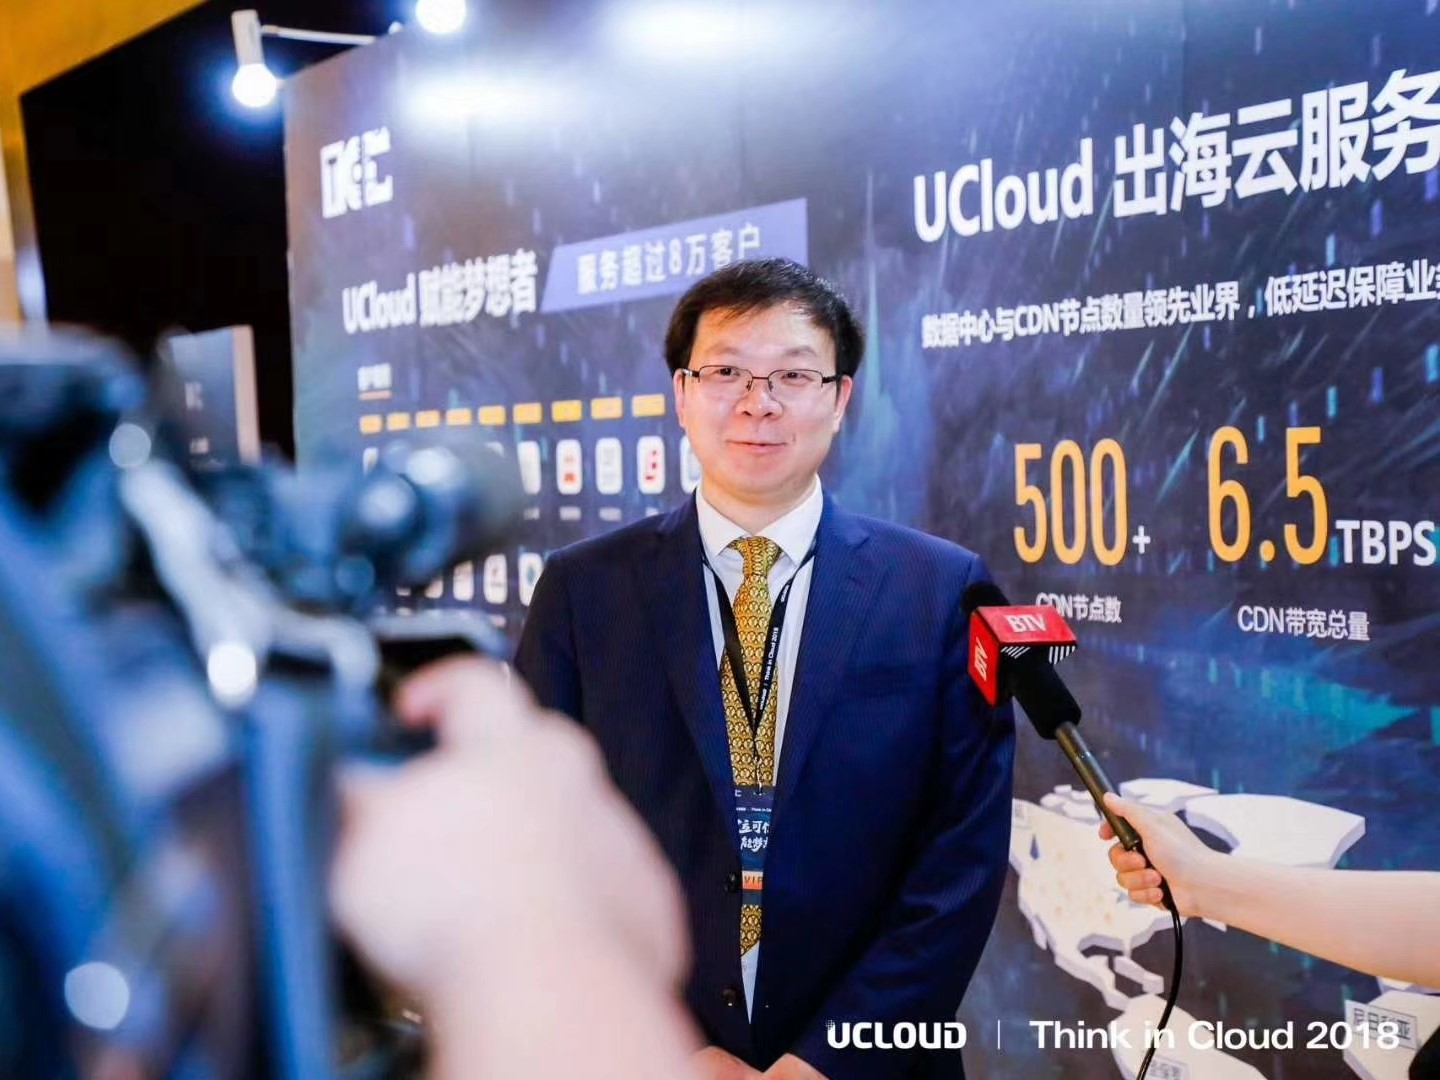 All about Clouds – Strategic Global Expansion May be the Clever Way to Go for UCloud